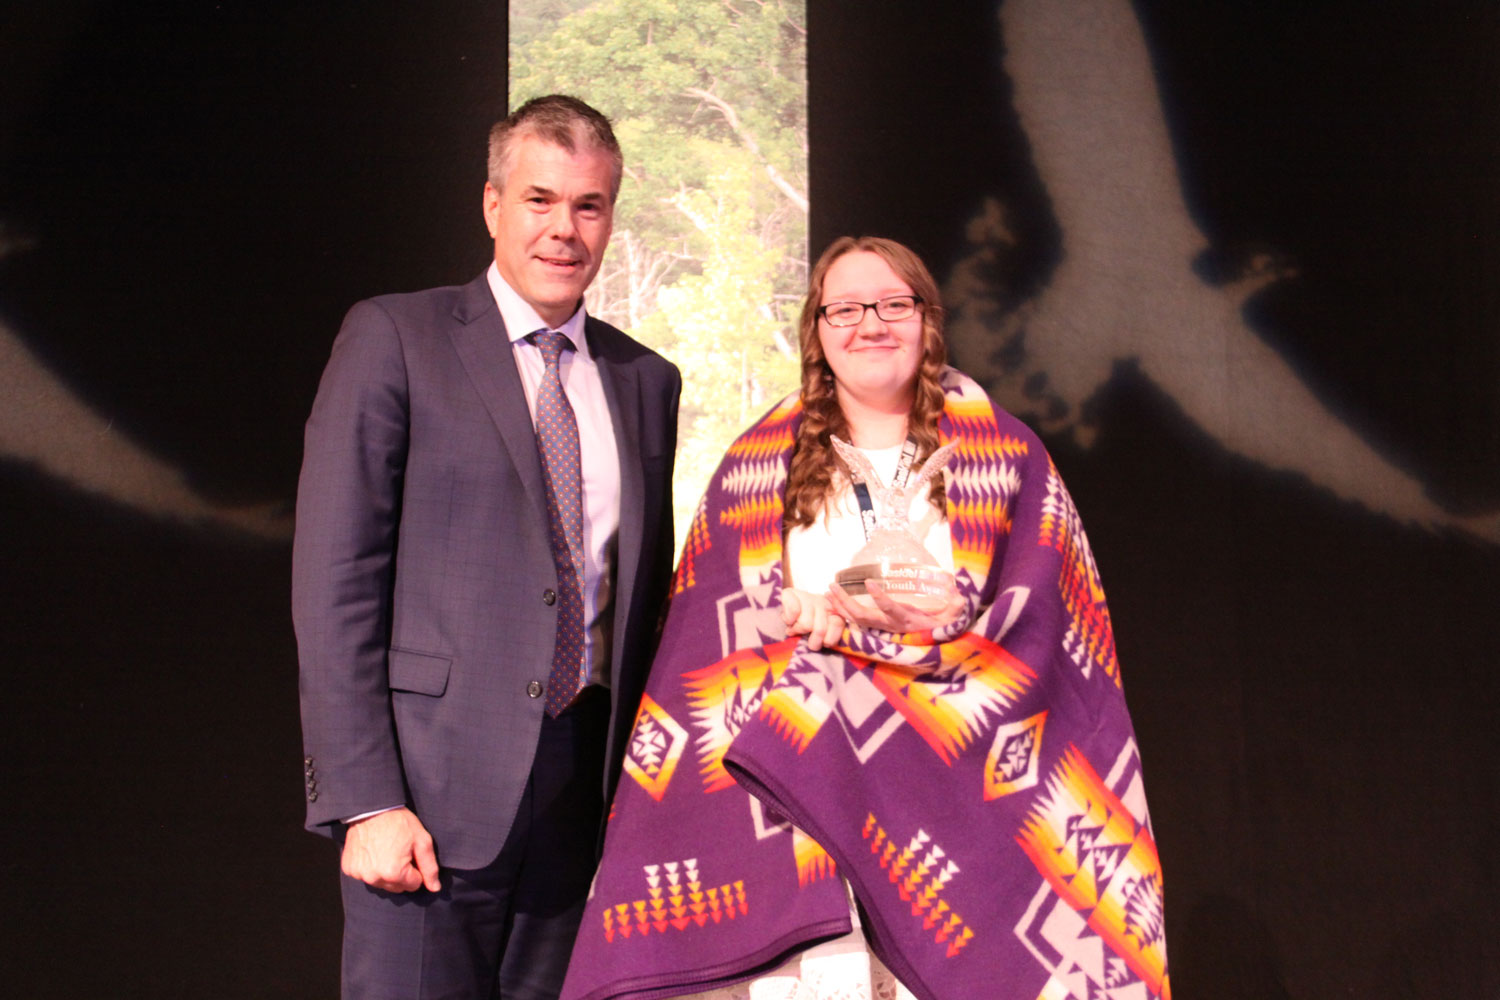 Scott Bradley of Huawei presented the Technology/Science award to Deserae Goodhand